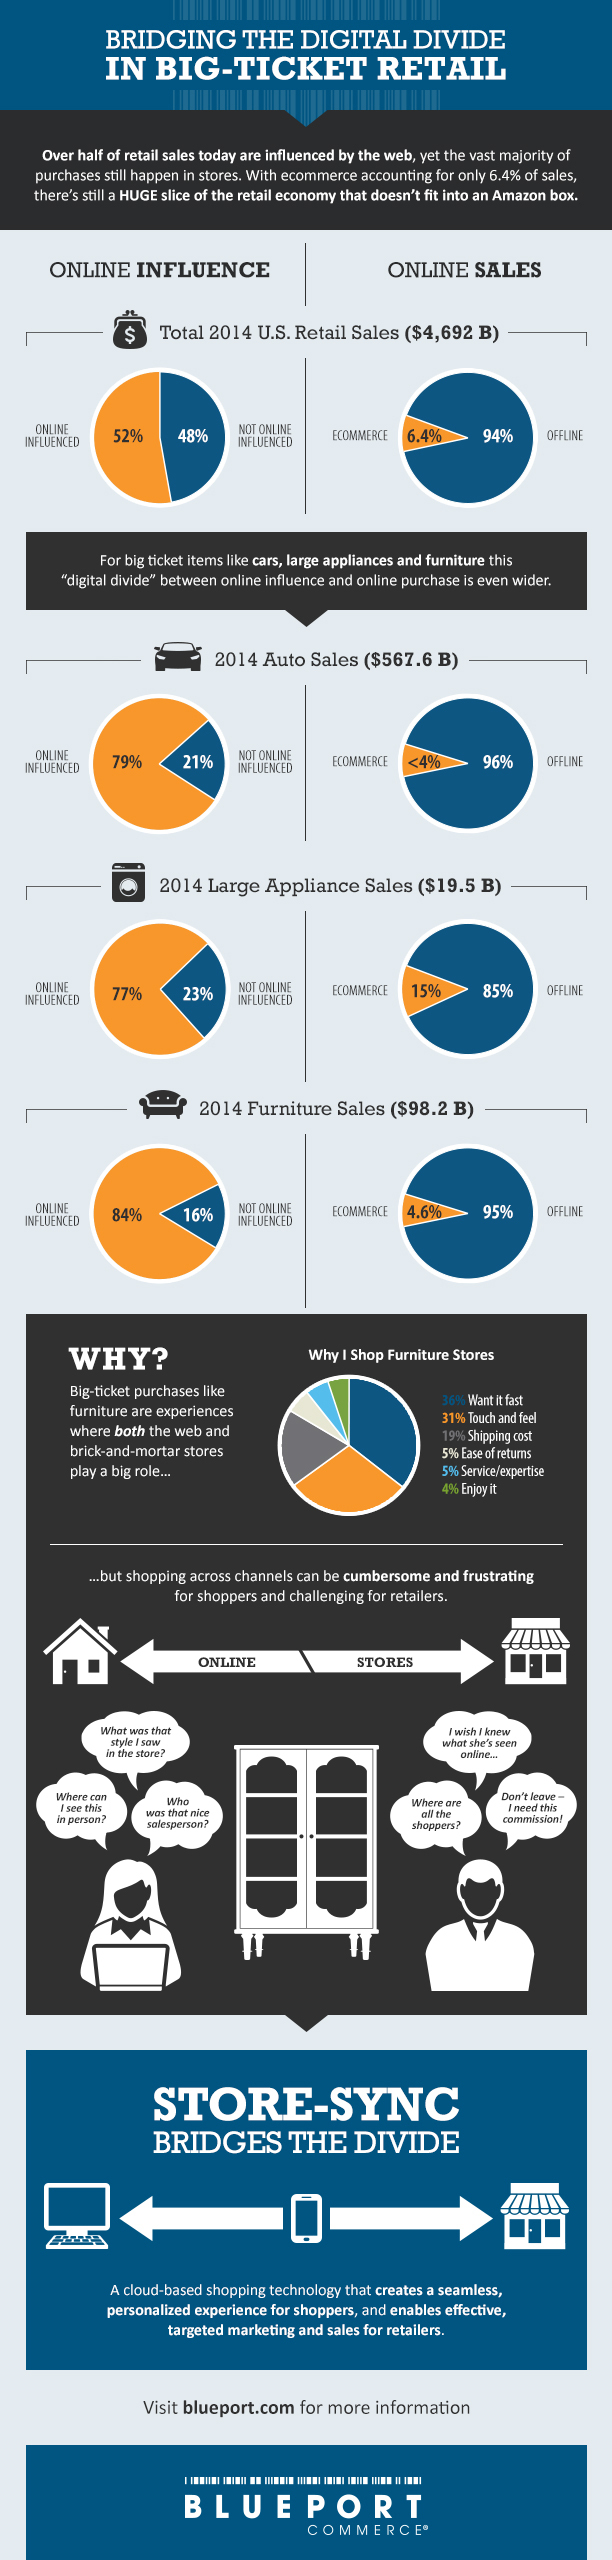 Infographic: Bridging The Digital Divide in Big-Ticket Retail (Graphic: Business Wire)